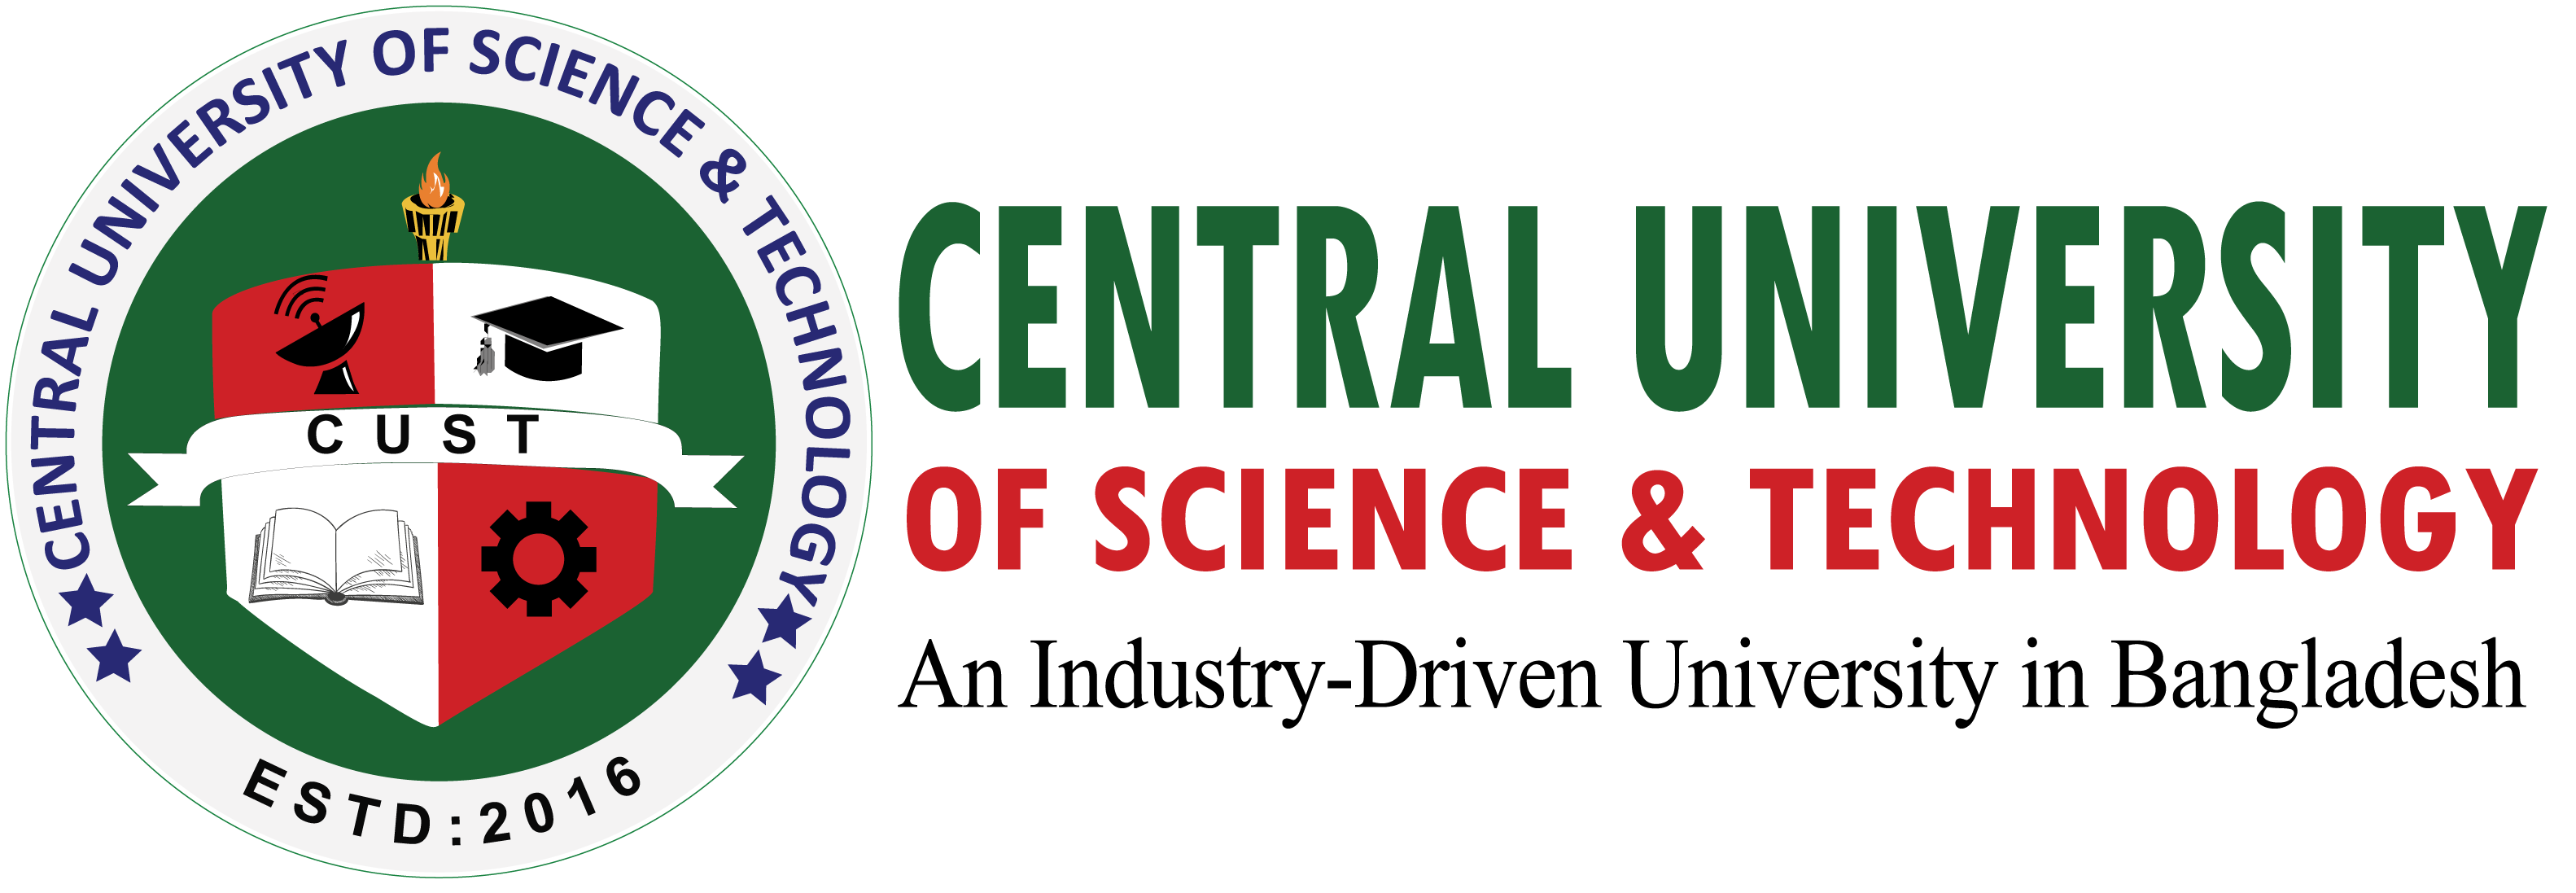 The University - Central University of Science & Technology